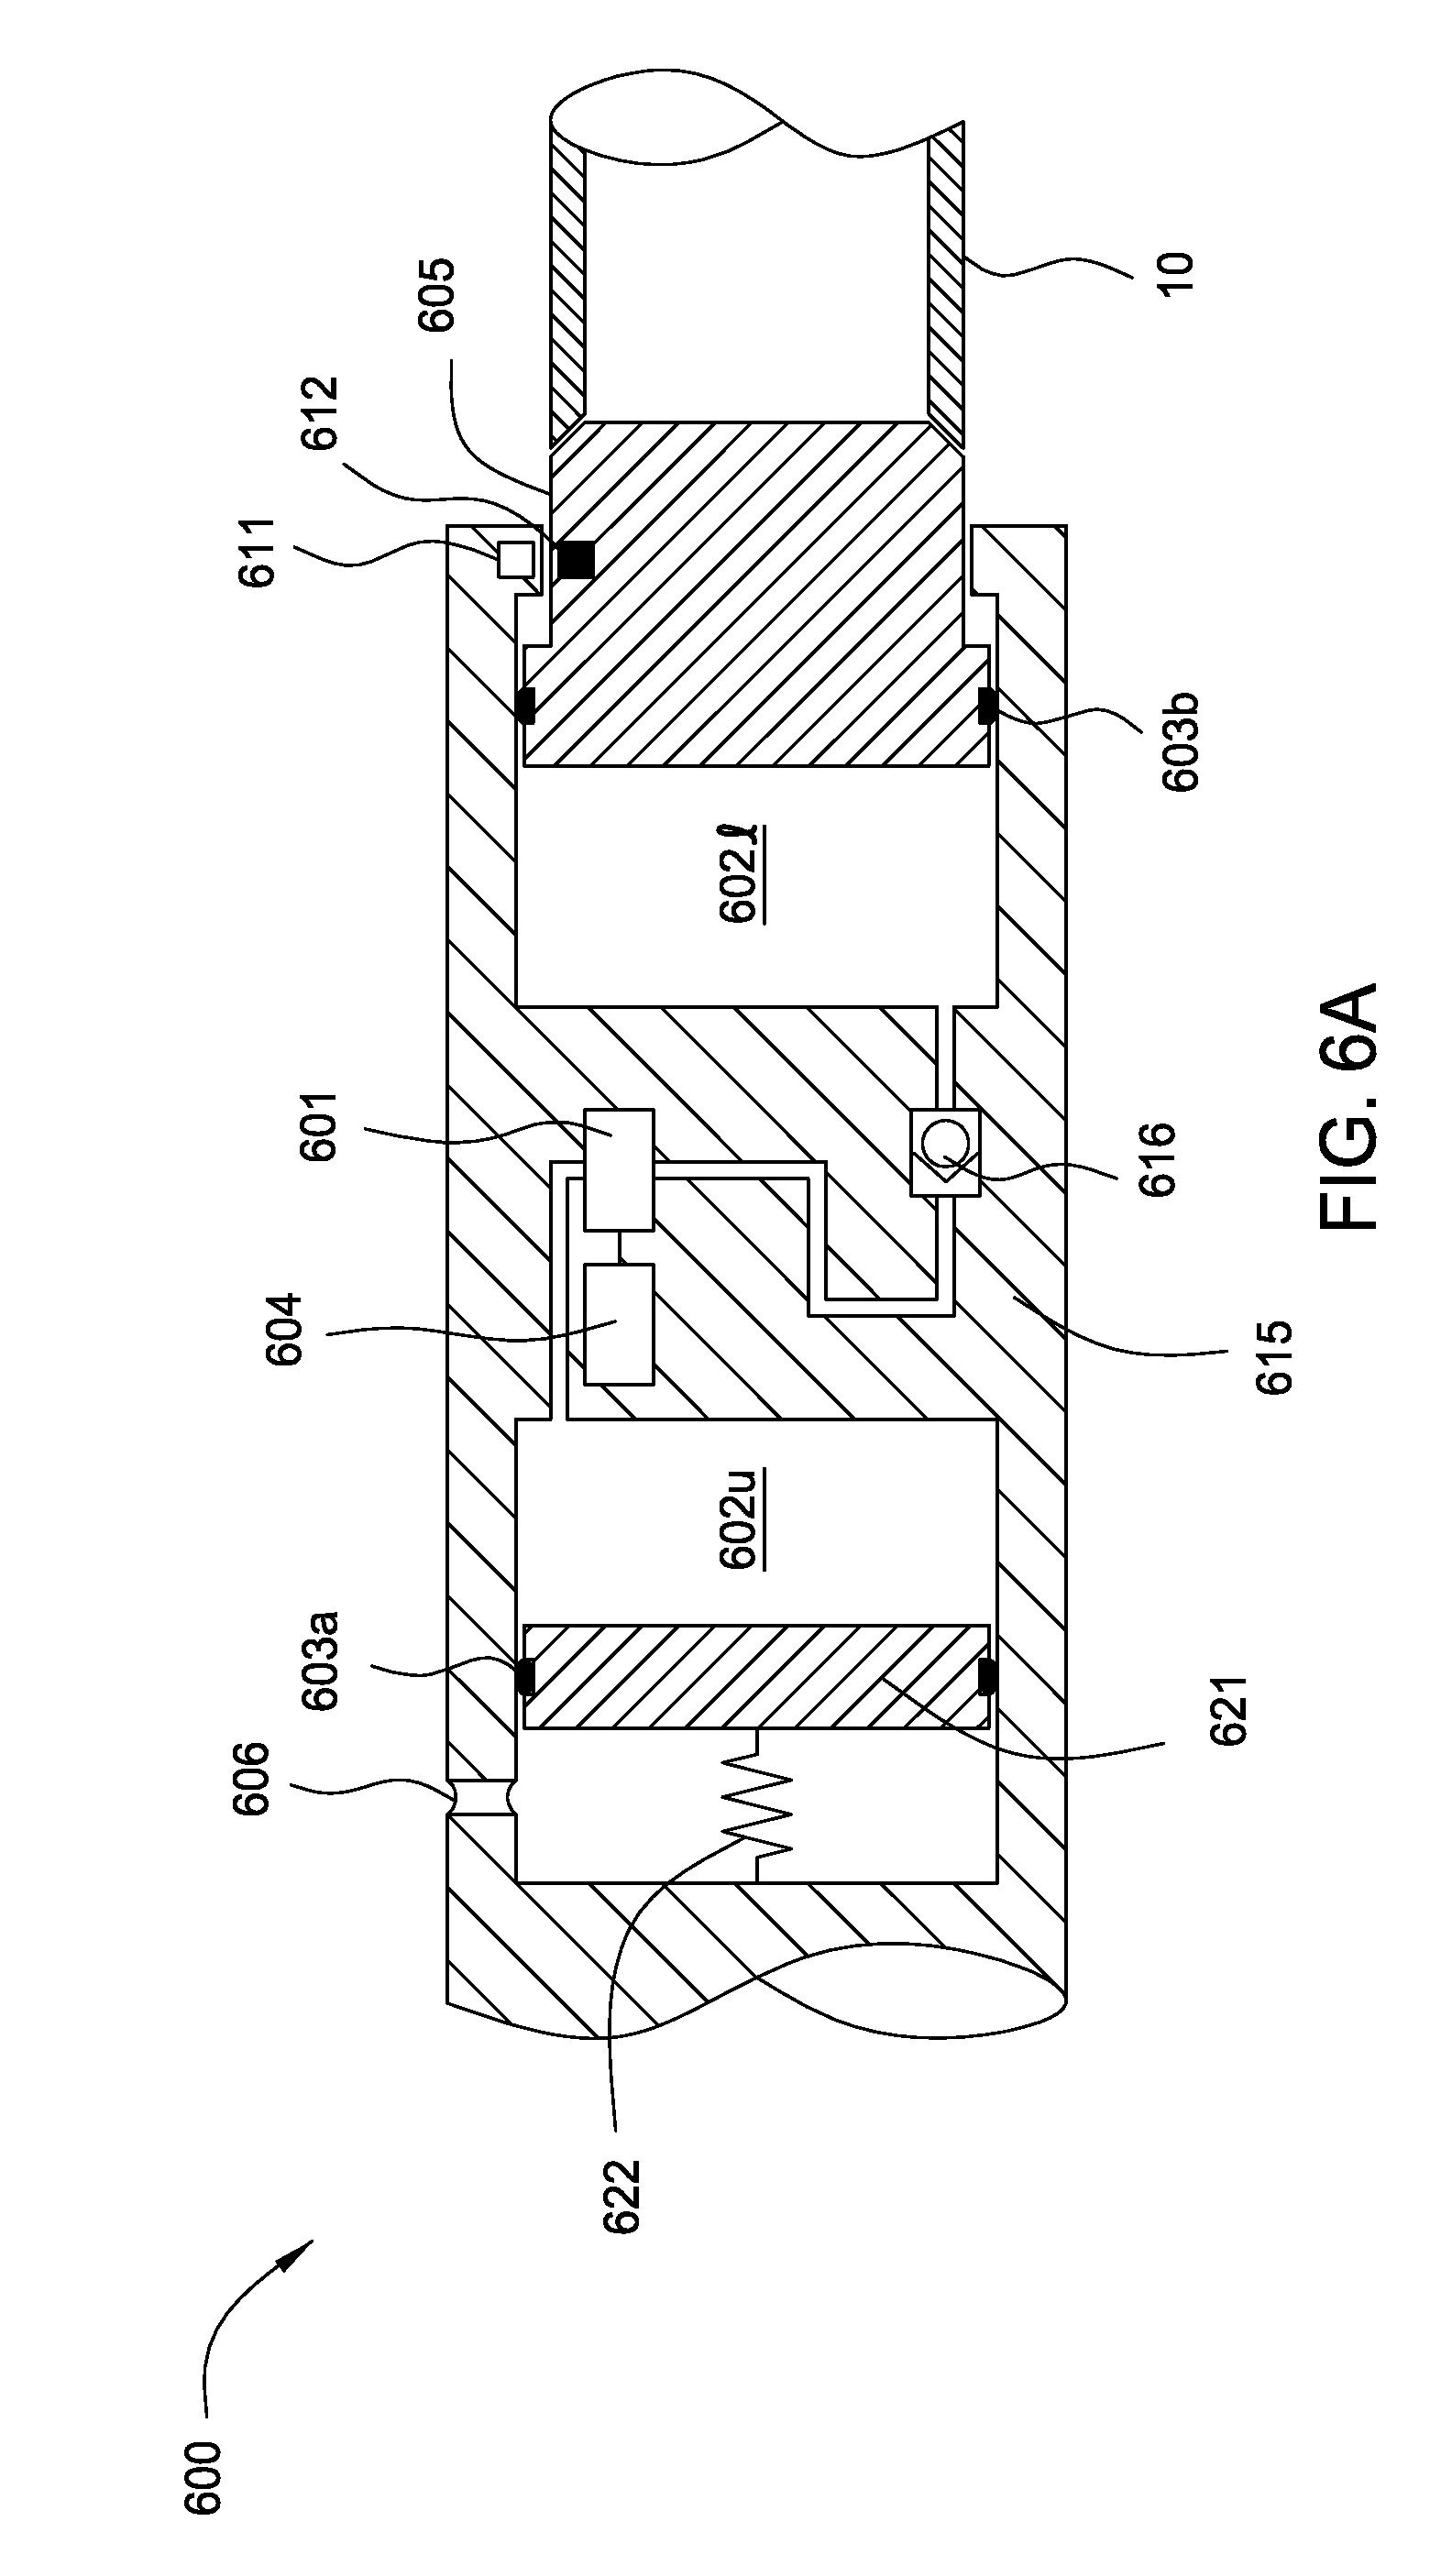 Fuse Box Diagram For Chrysler Pacifica